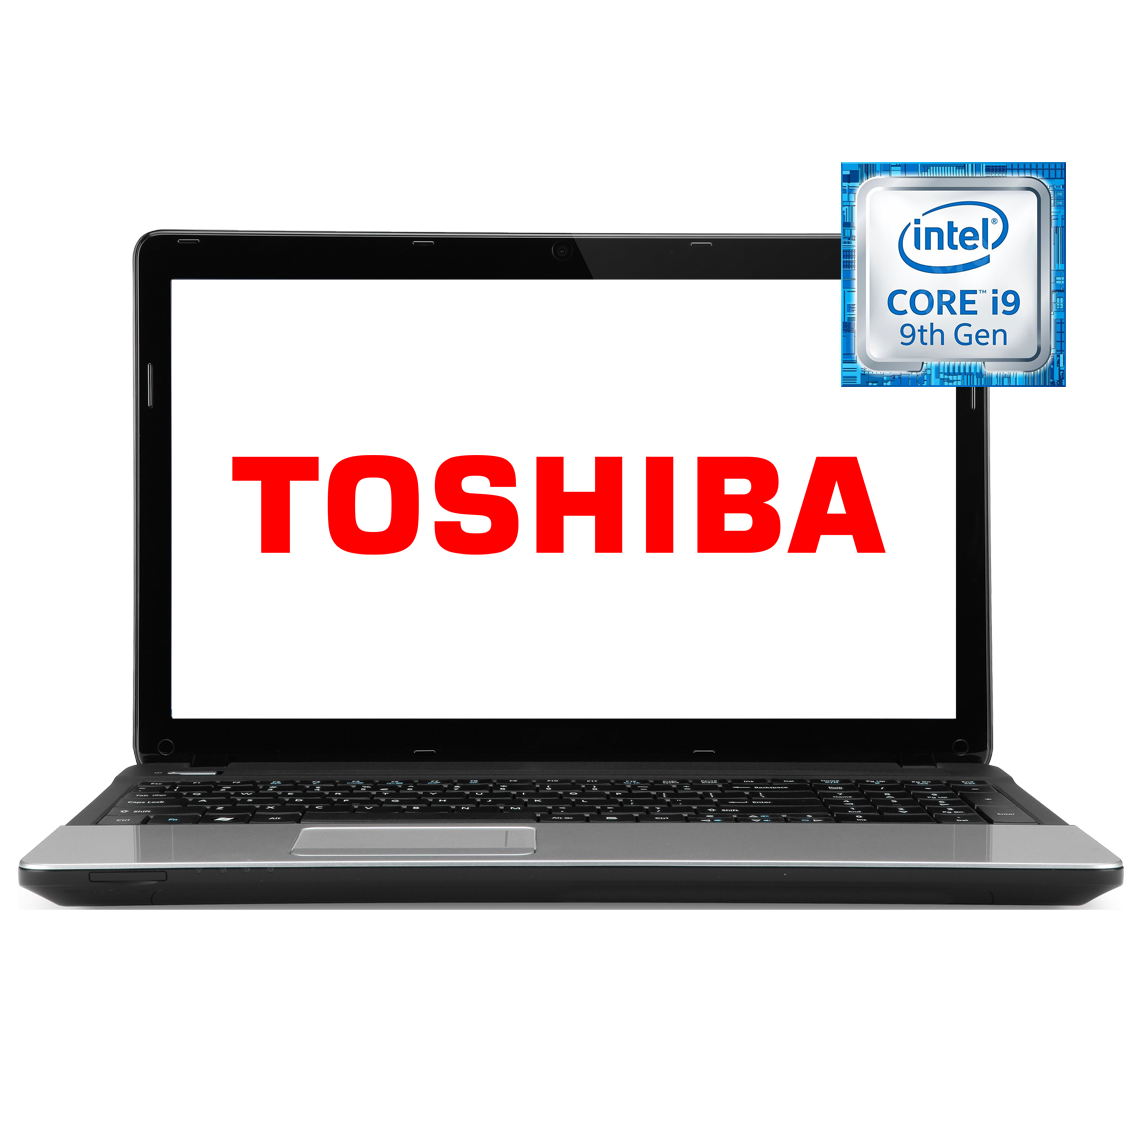 16 inch Intel 9th Gen